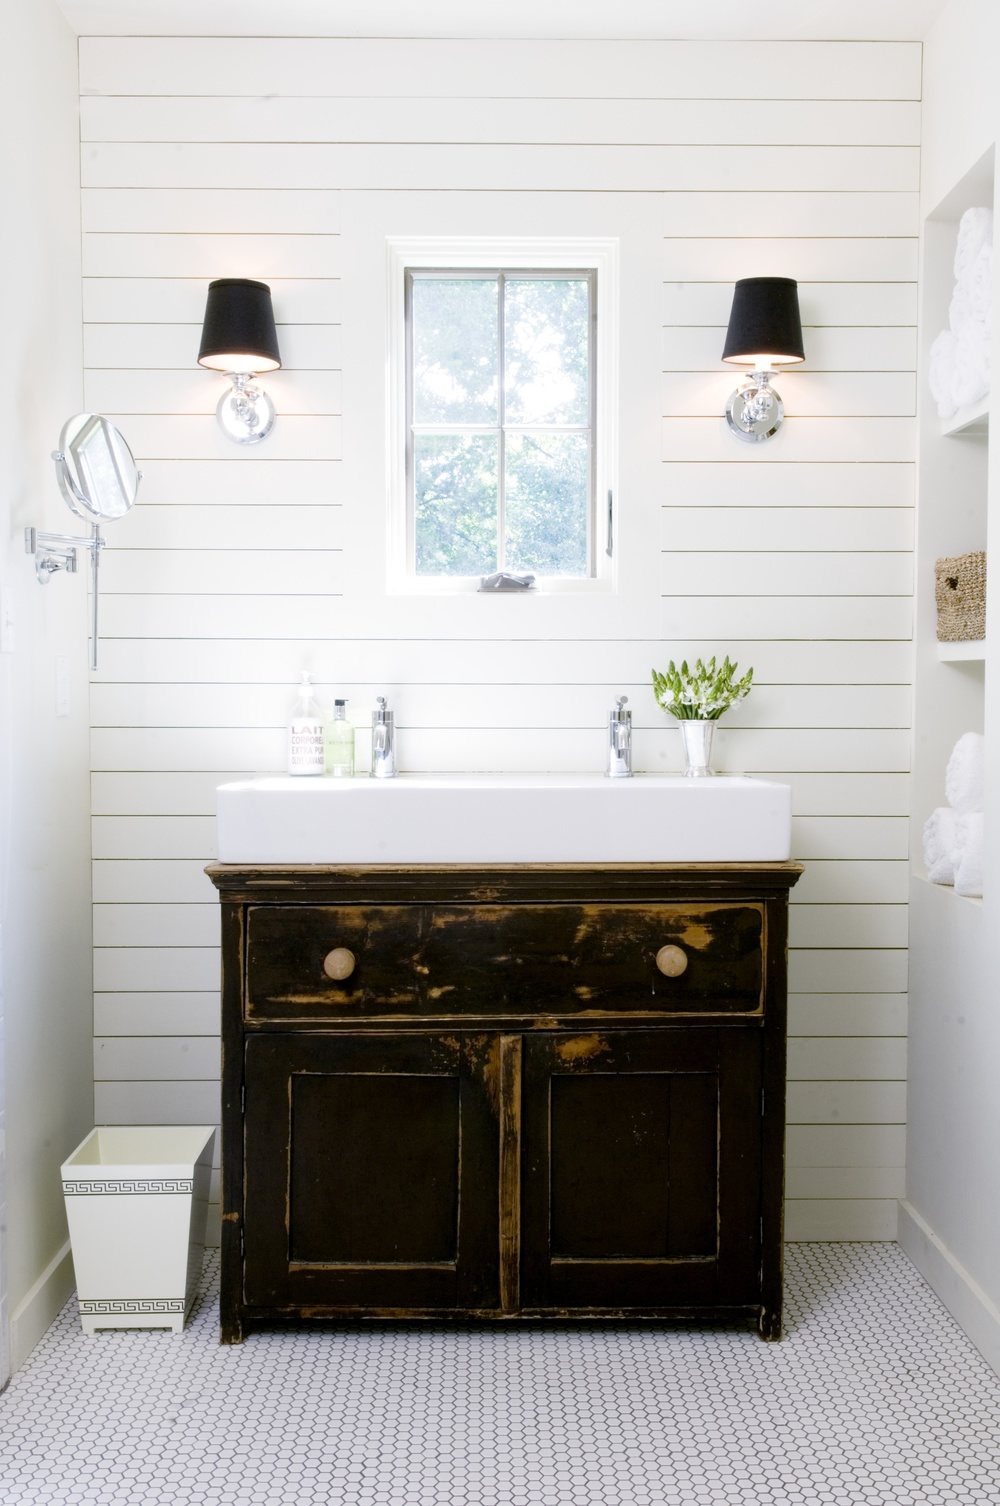 Farmhouse bathroom with white plank wall and distressed black vanity.  Designed by David Anderson Architect | Friday Favorites at www.andersonandgrant.com